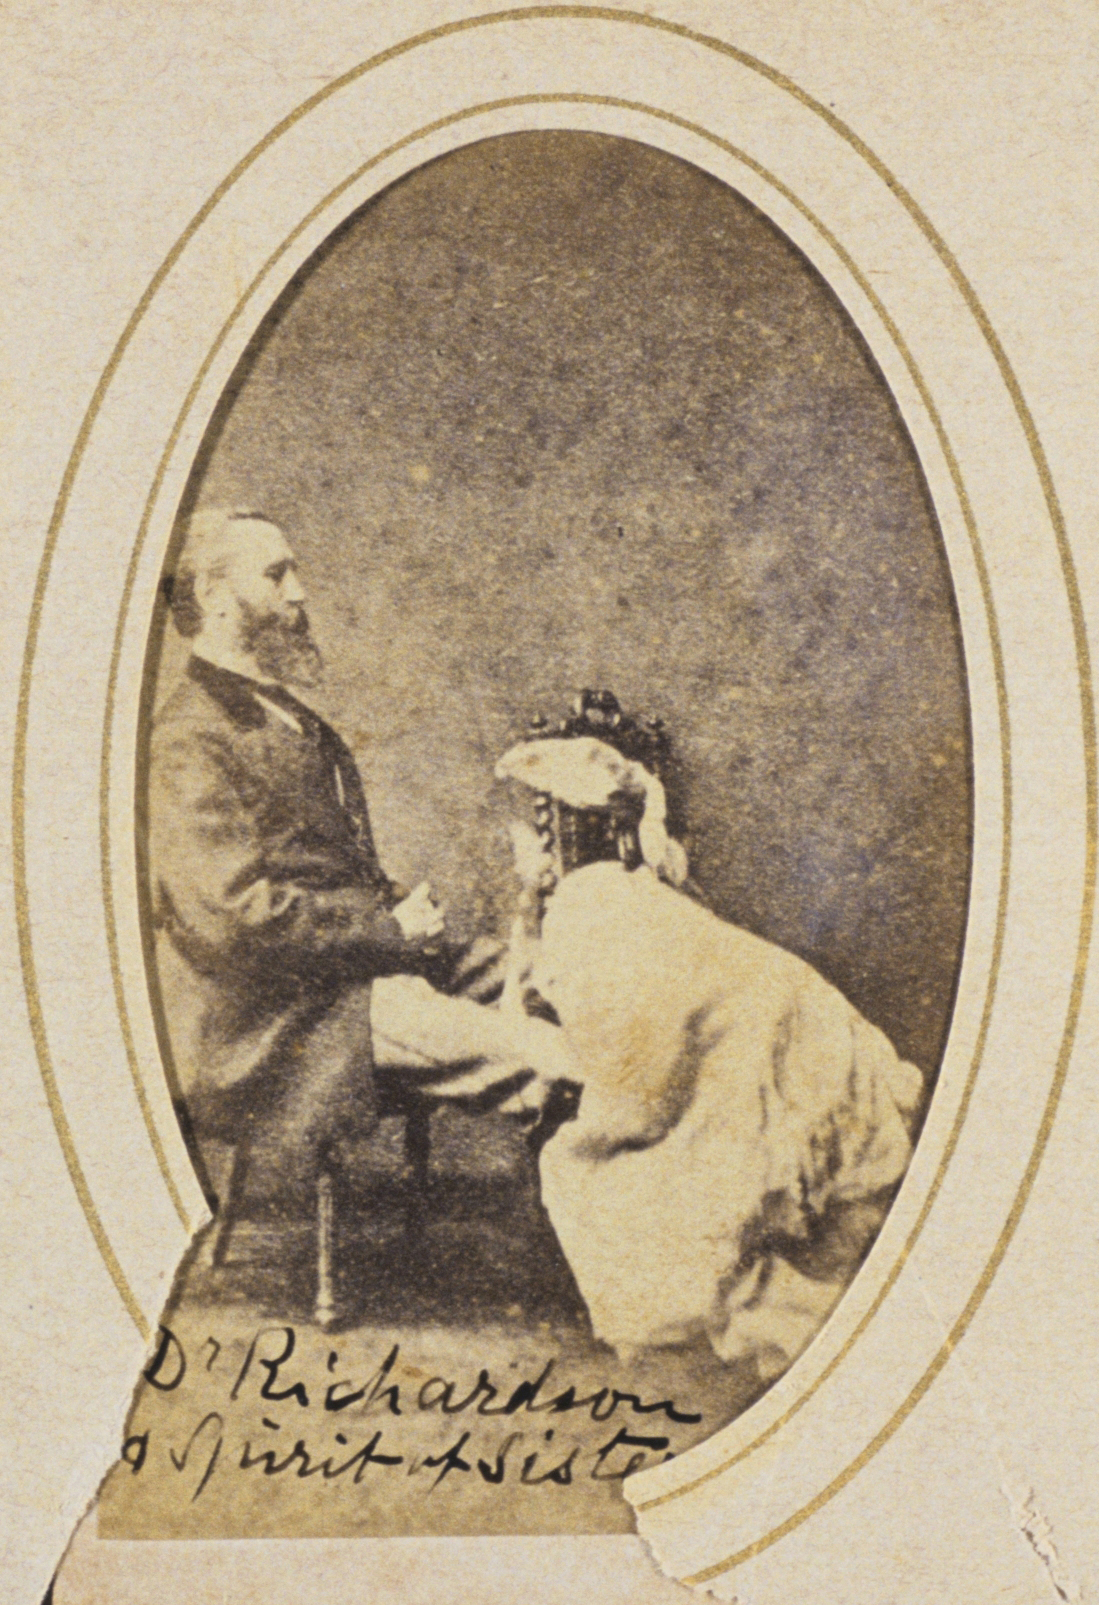 Frederick Hudson Dr Richardson And Spirit Of His Sister 1873 74 Carte